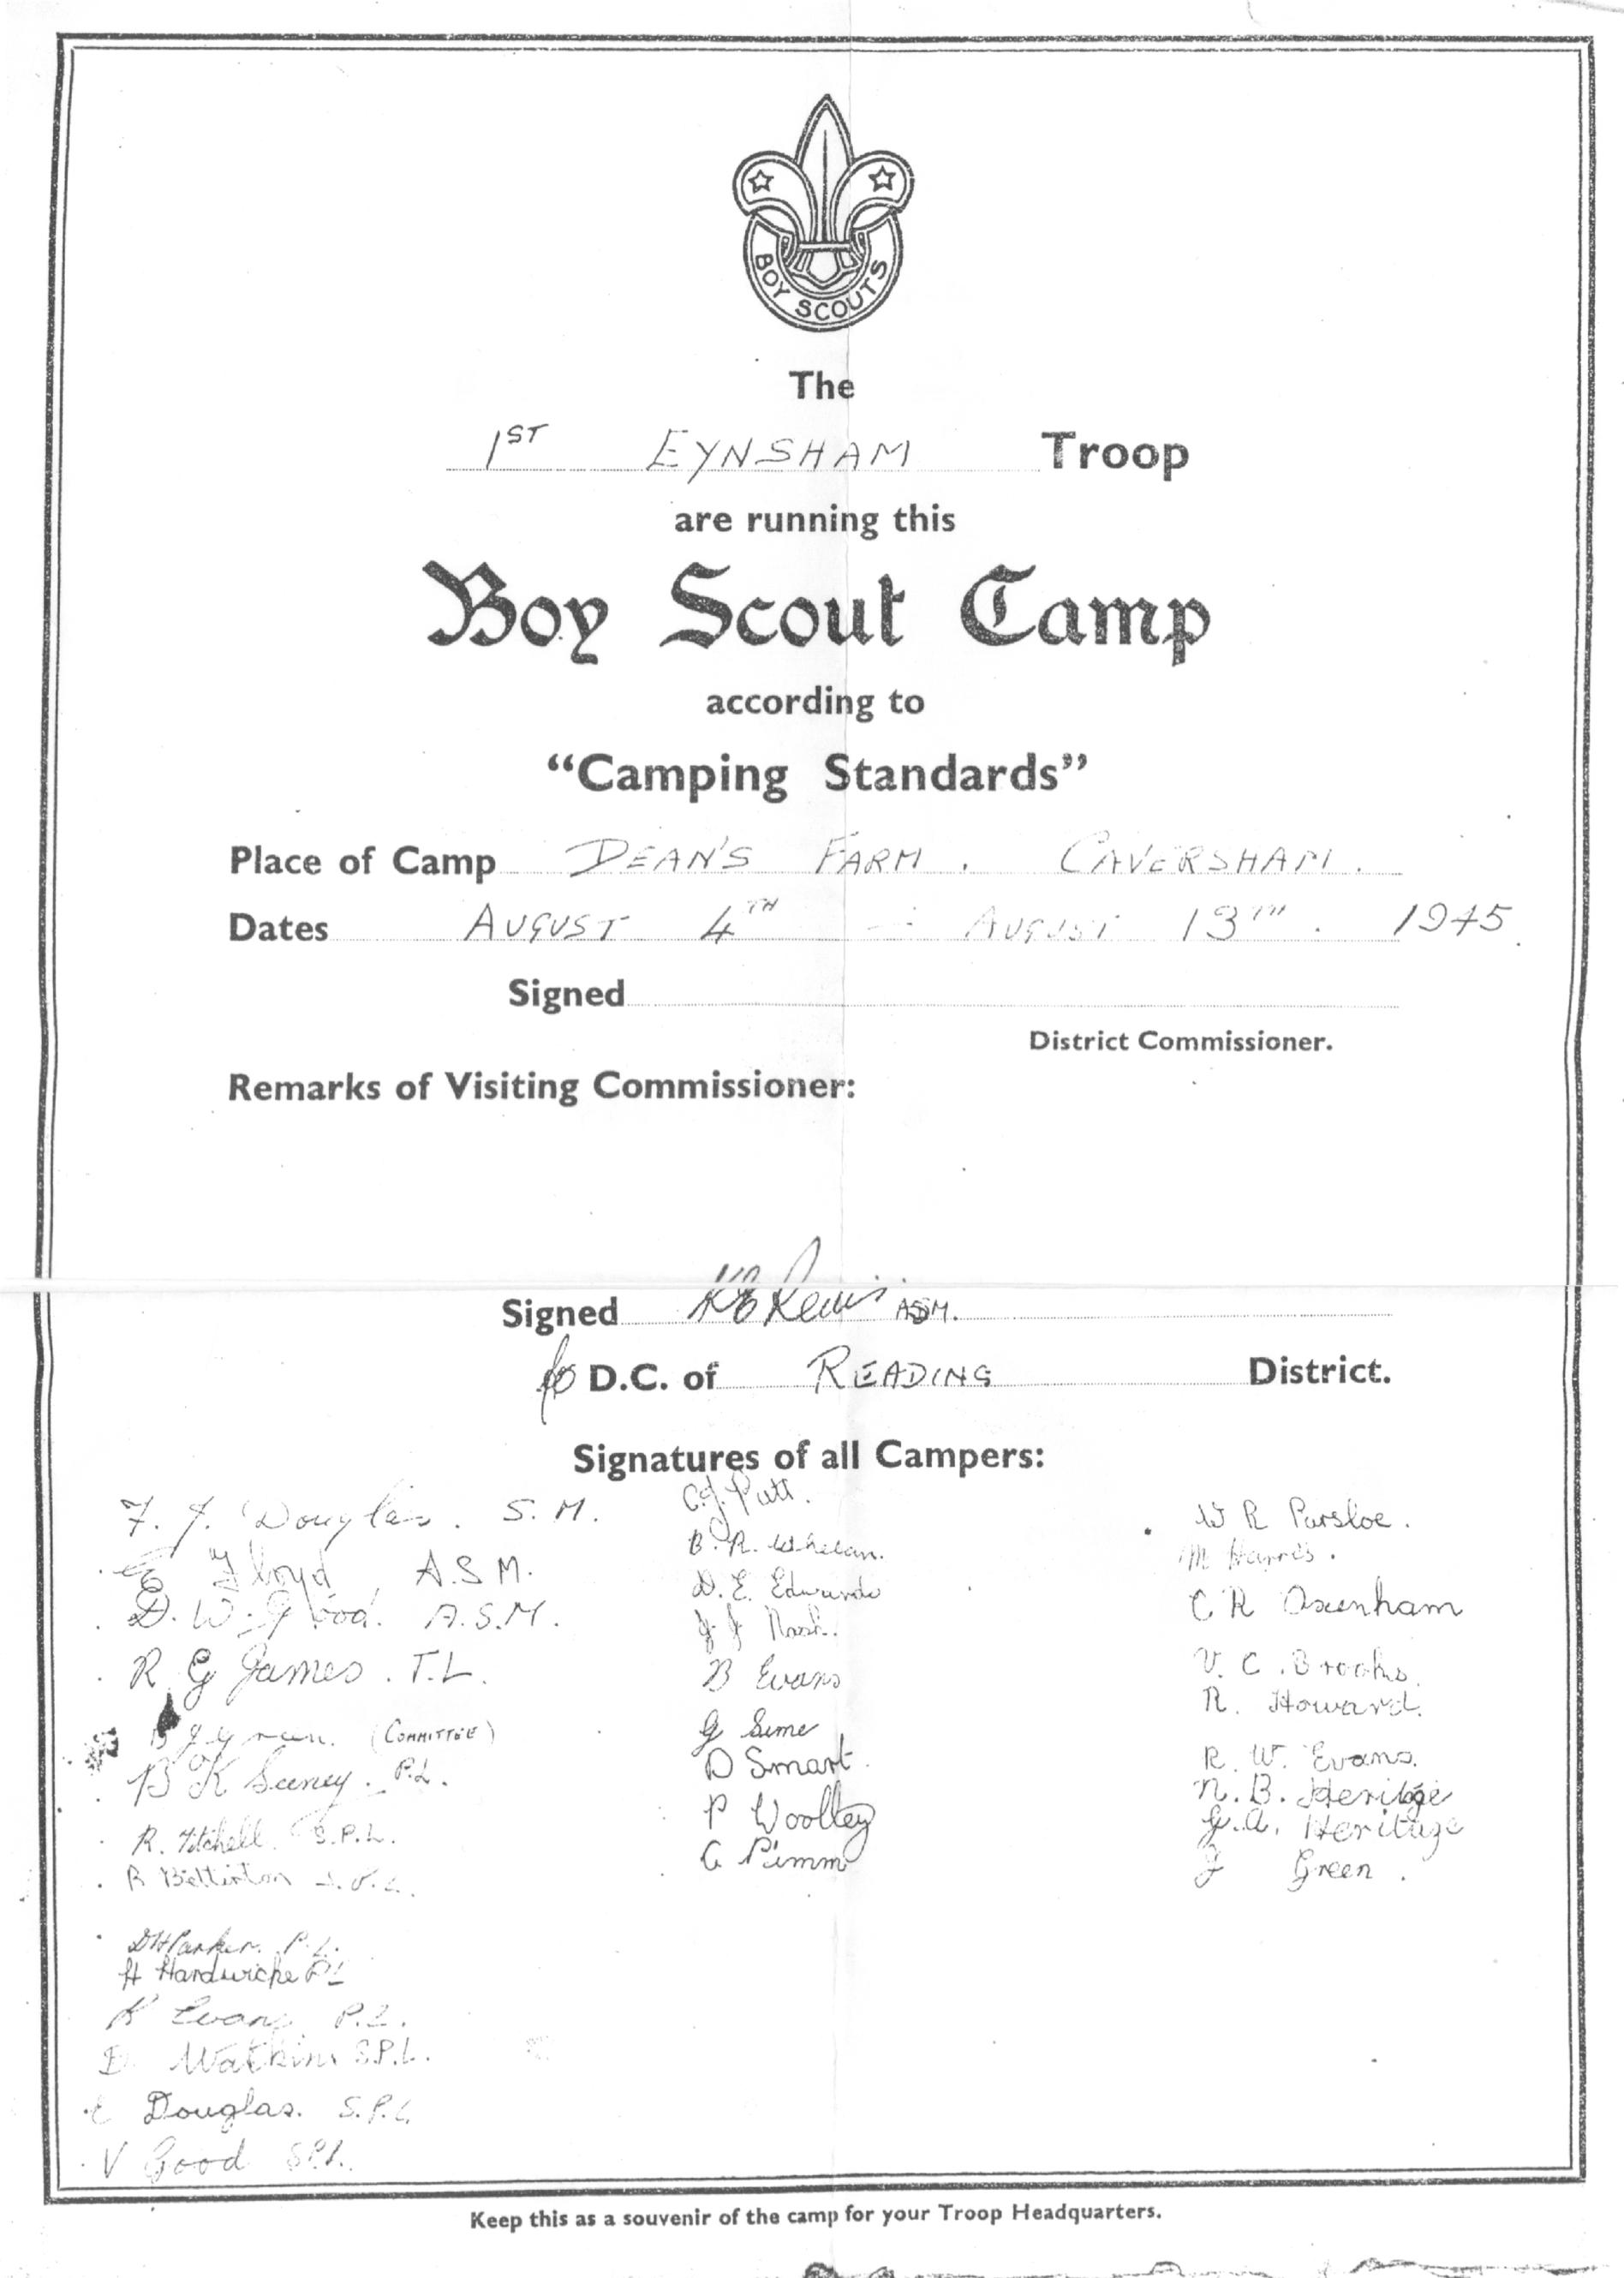 1945 Camping Standards Awards Caversham